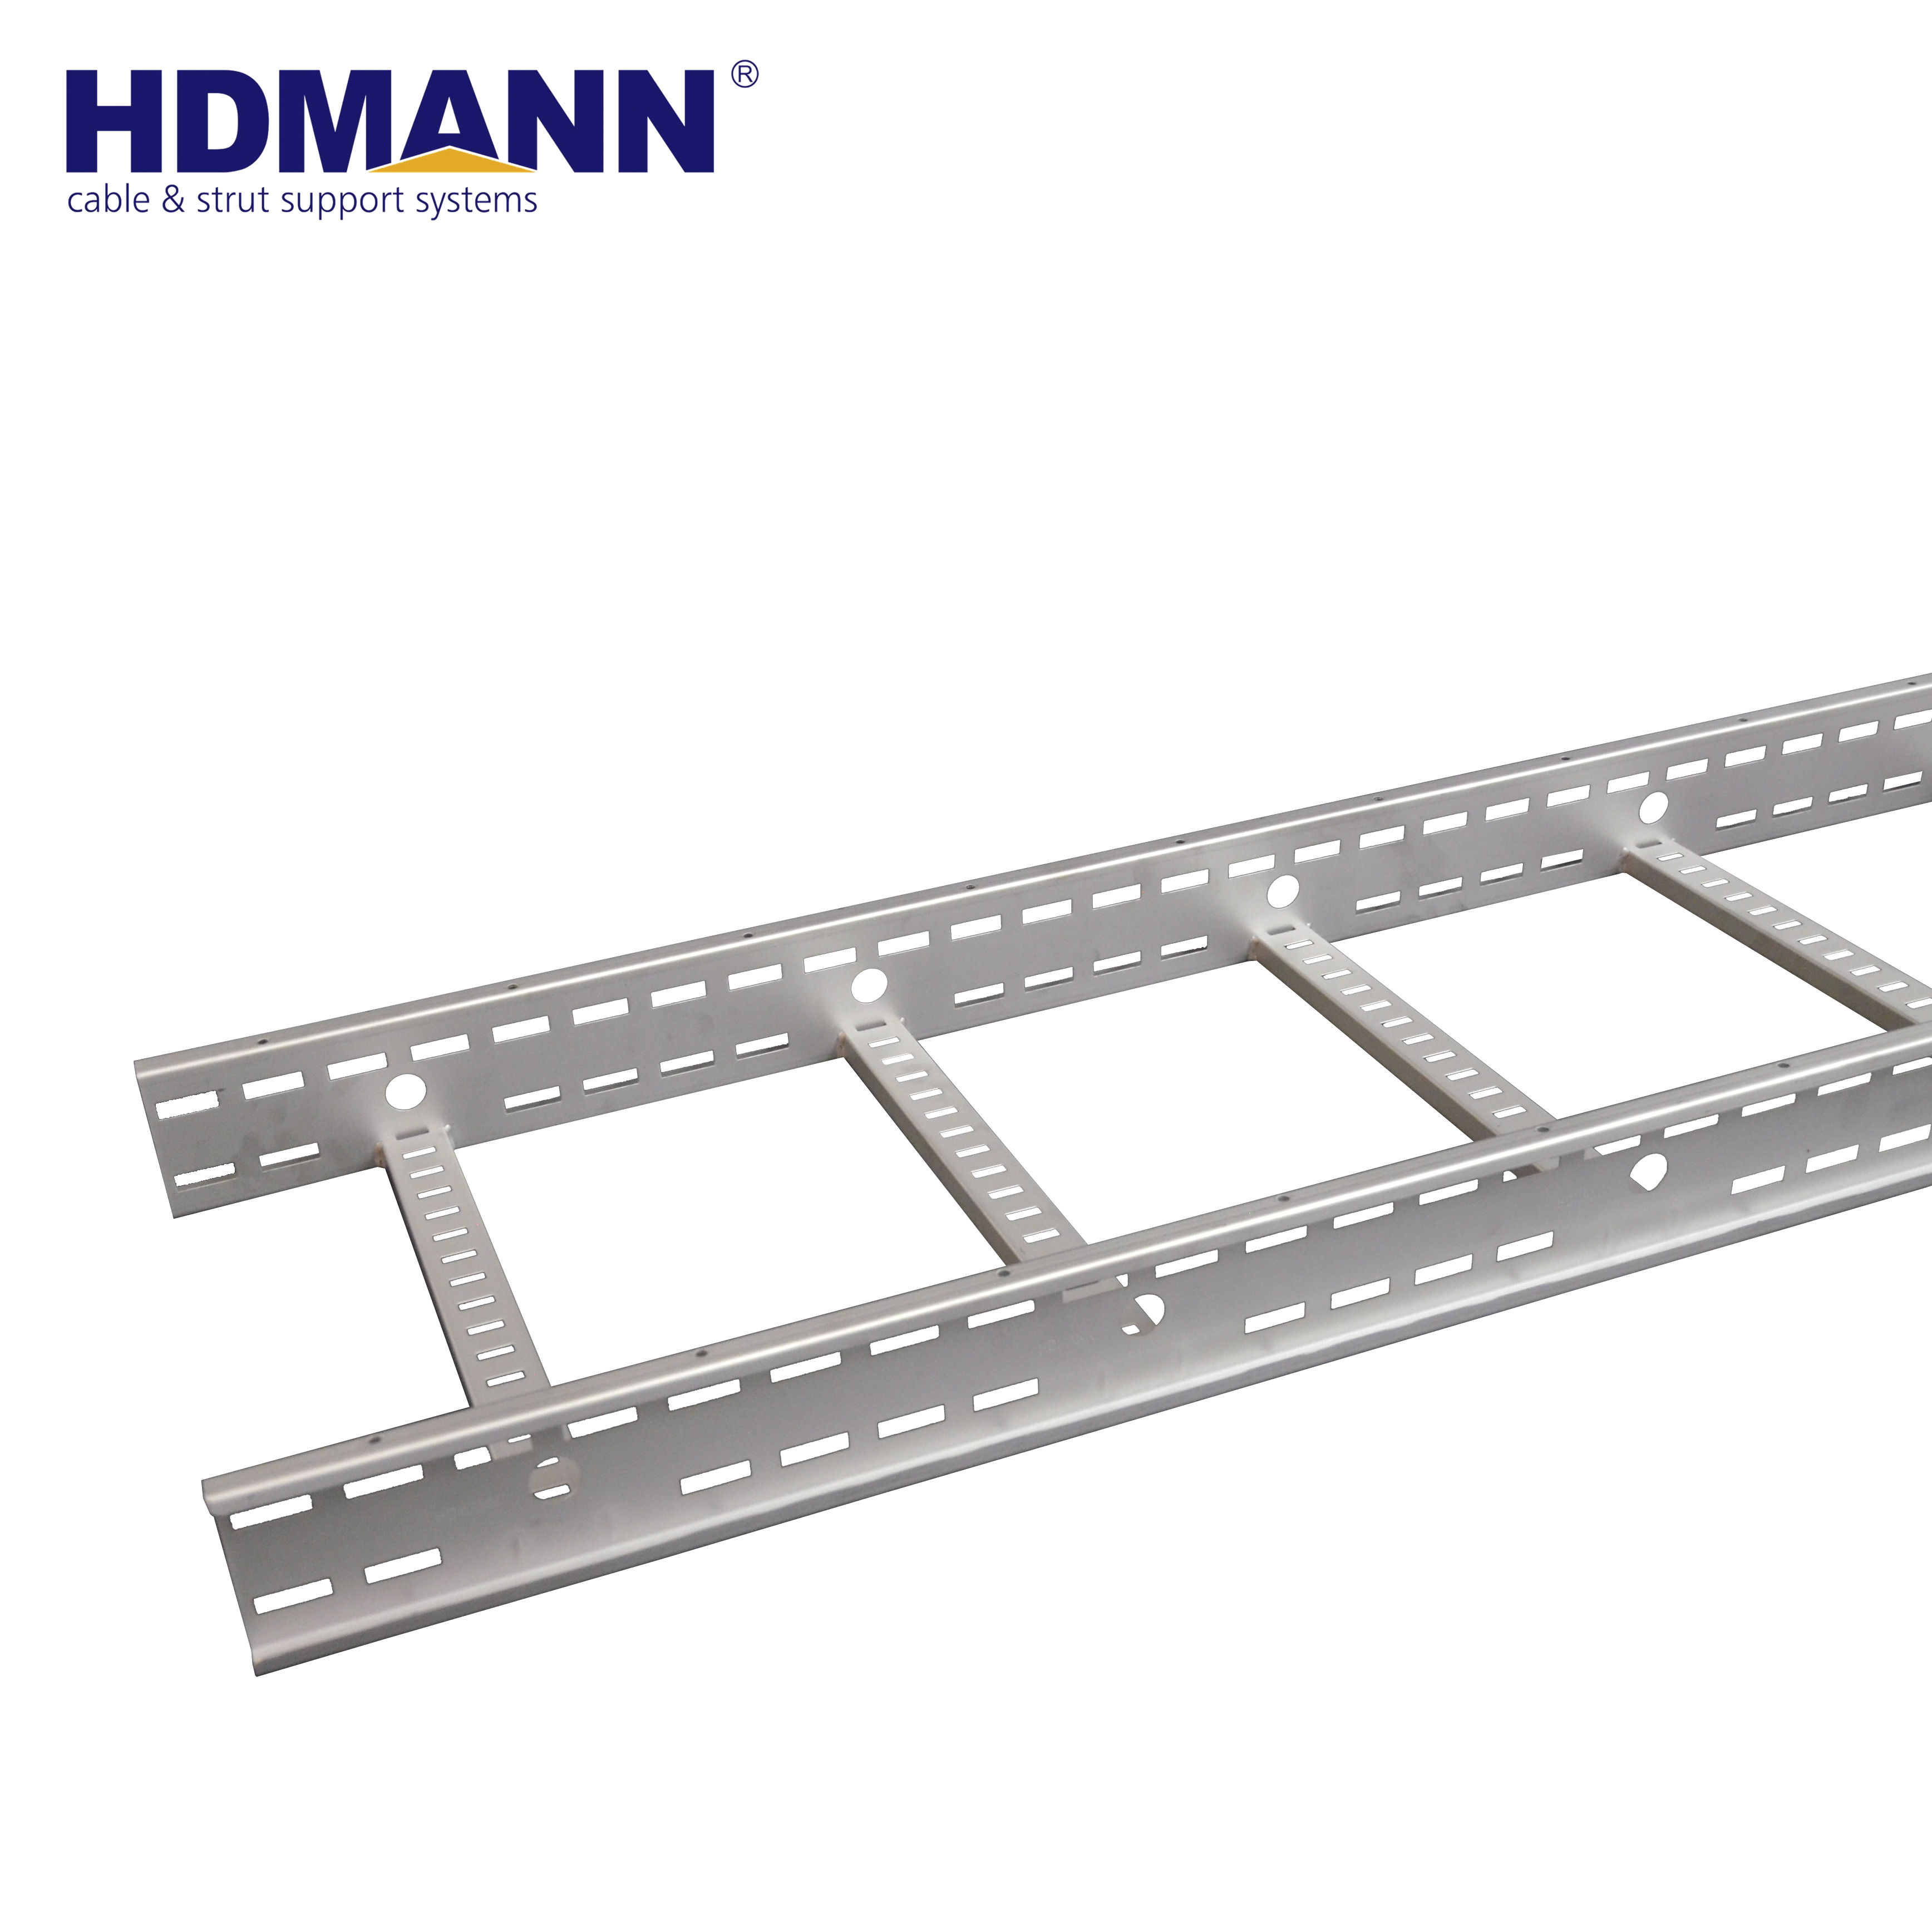 HDMANN Economical Price FRP Cable Ladder Fiberglass Cable Tray